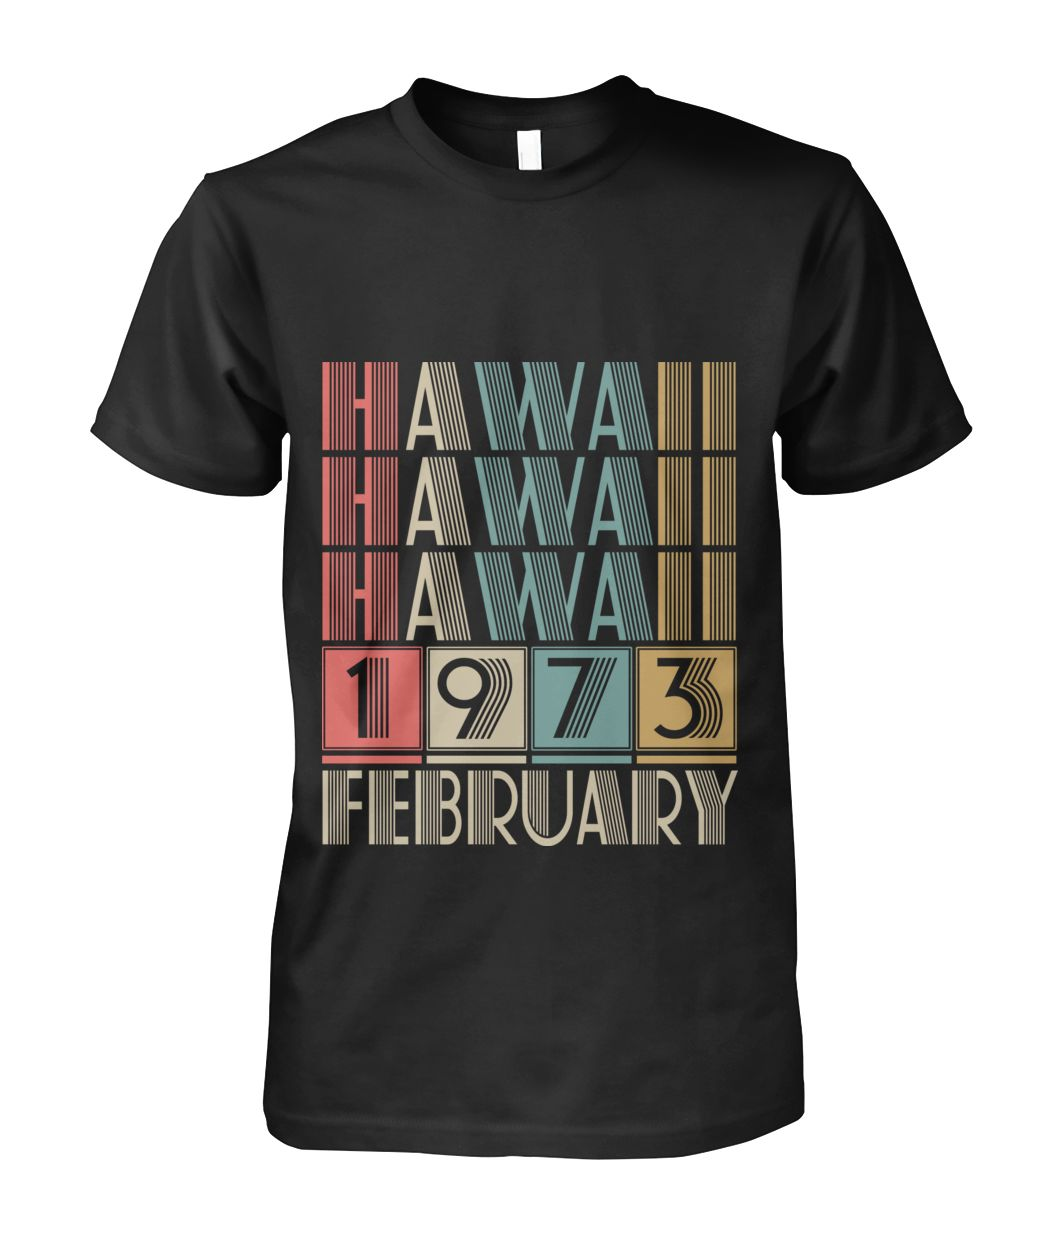 Born in Hawaii in February 1973 t shirt